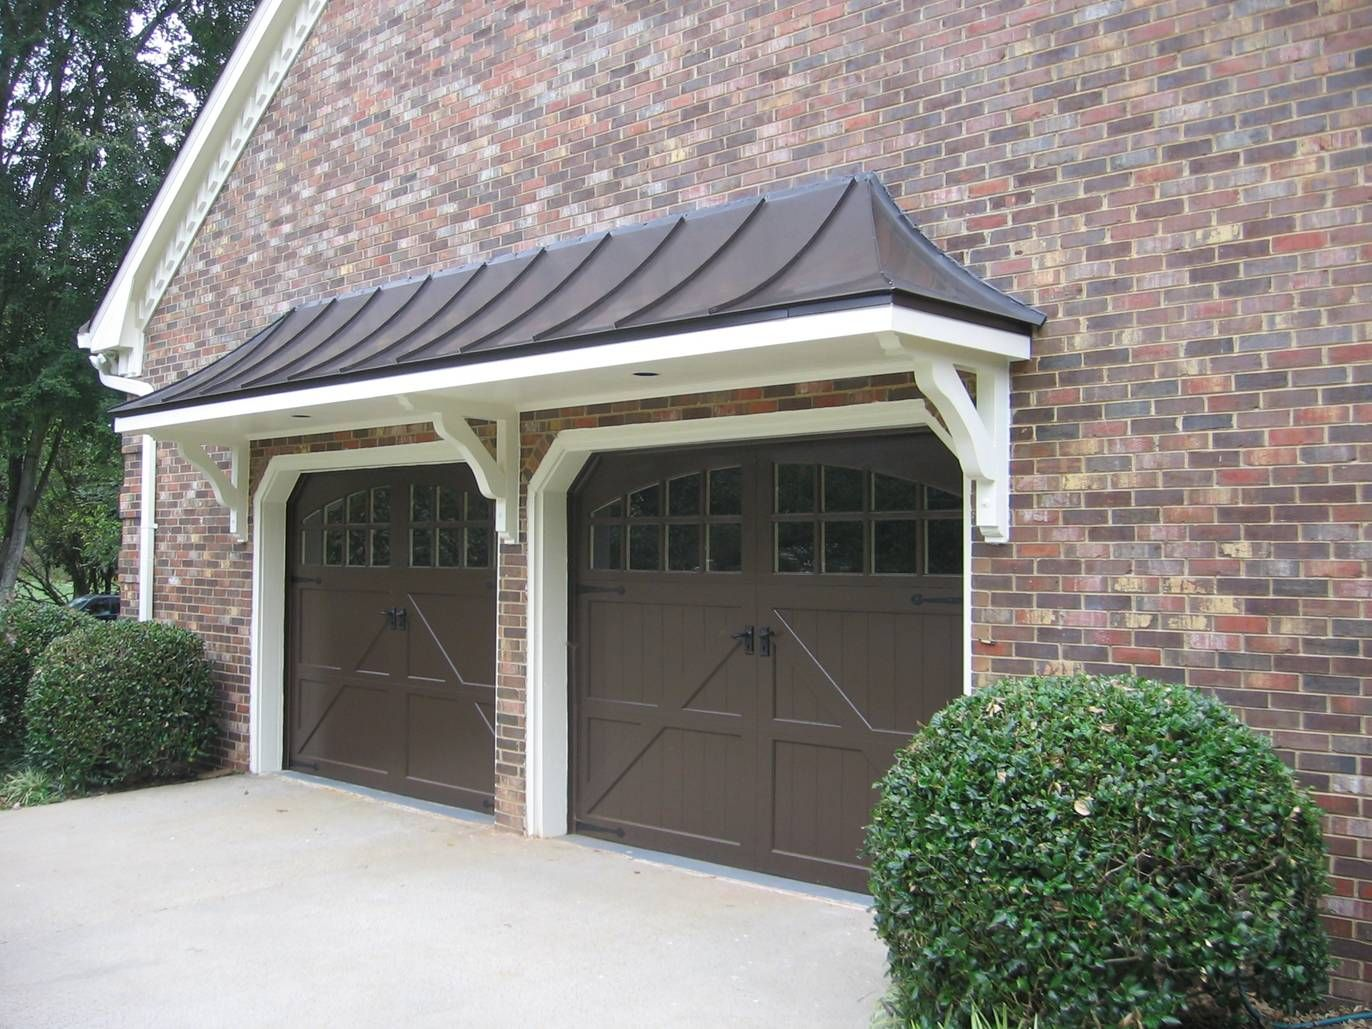 Metal roof bracket portico over double garage doors for Front door roof designs